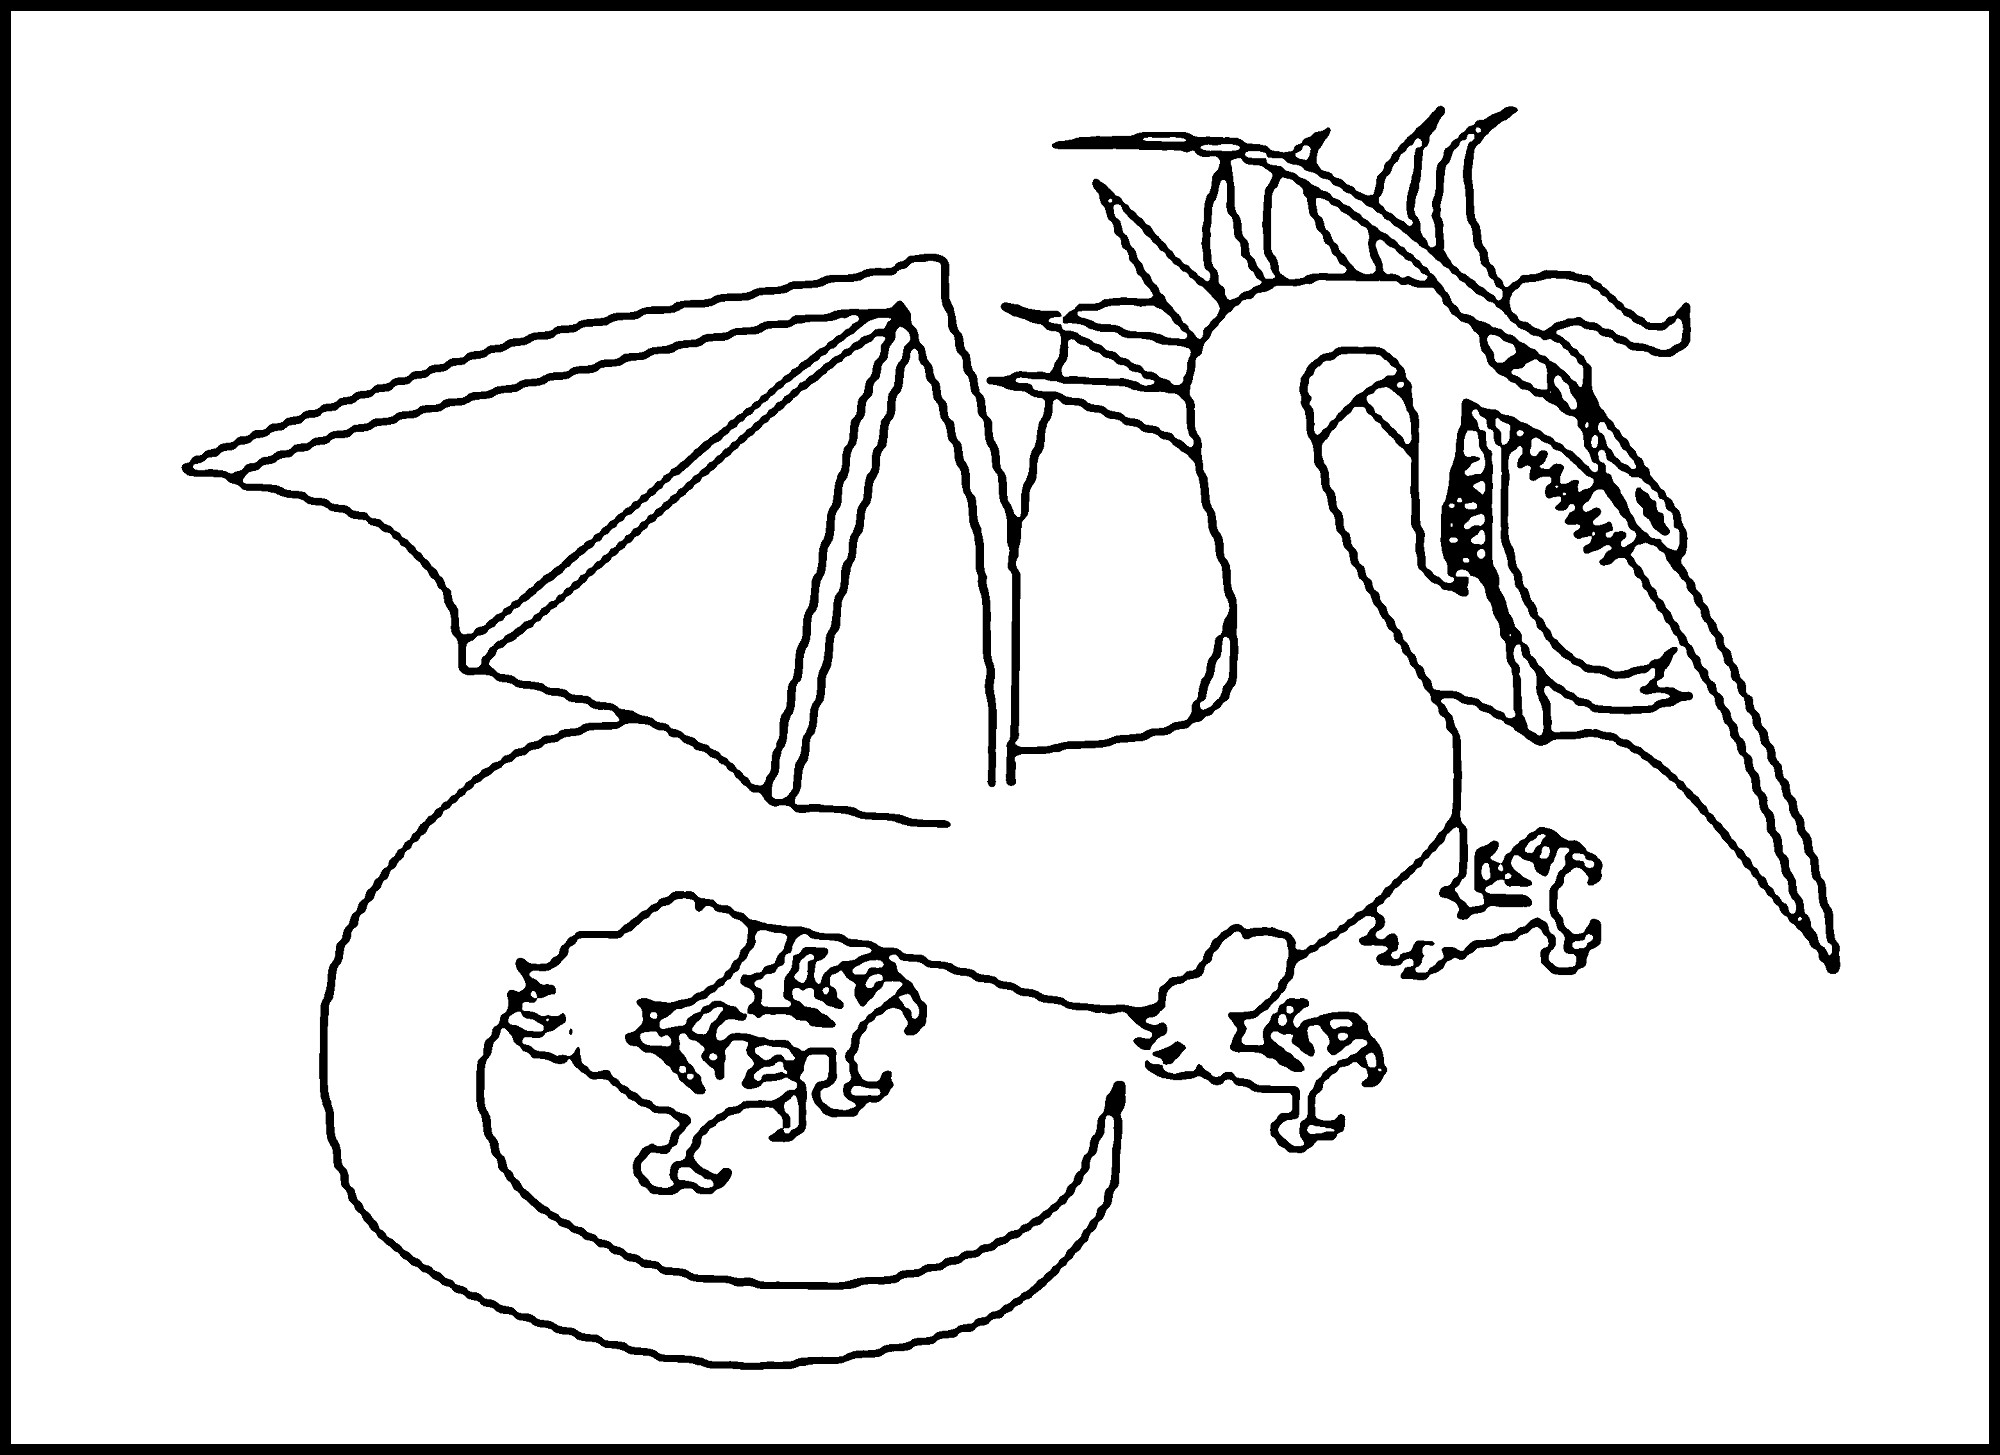 Dragon Tracing Pictures Dragon Coloring Pages Printable